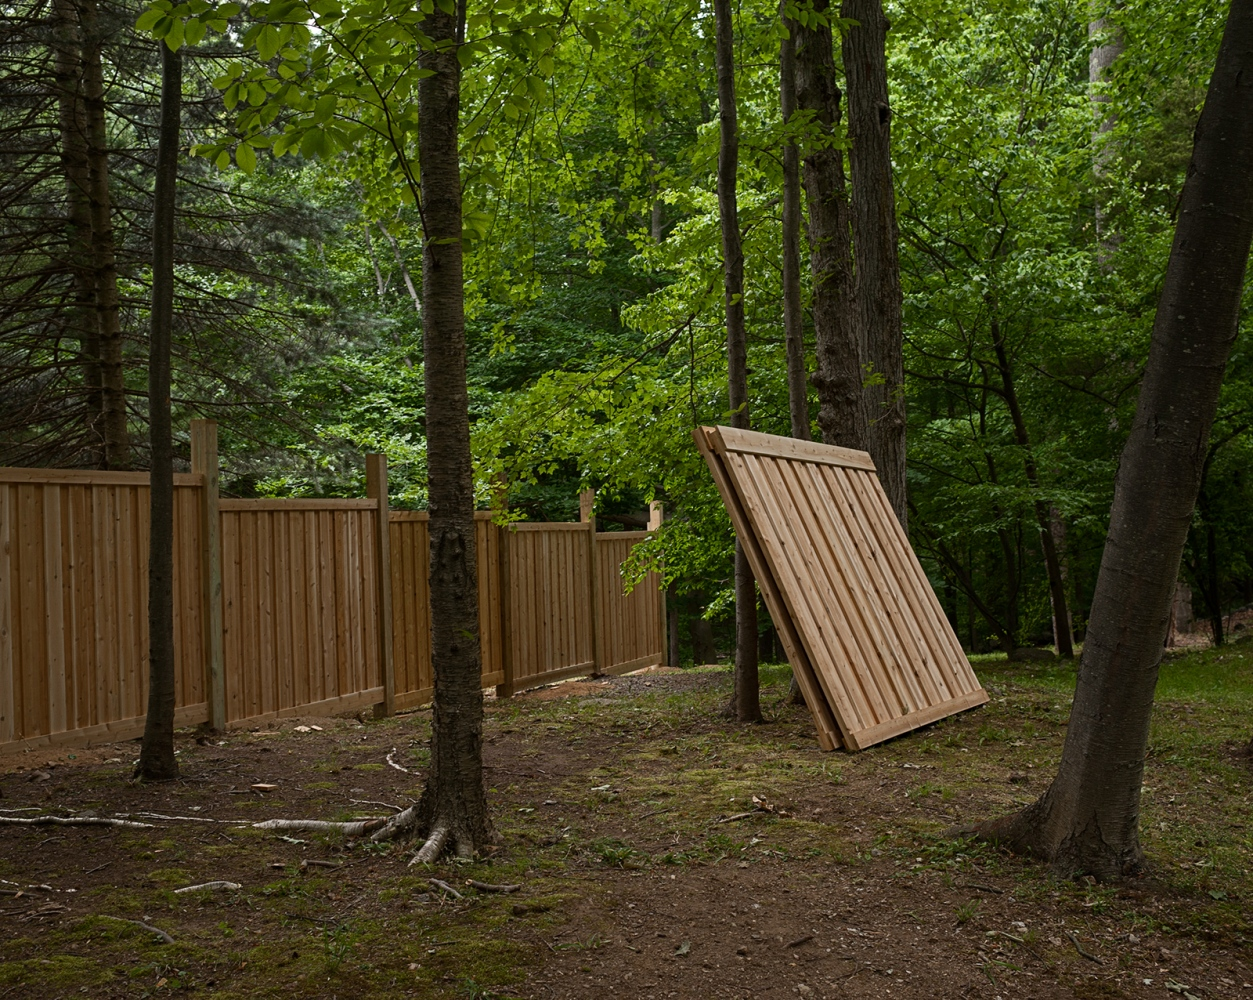 Another deer fence under construction.